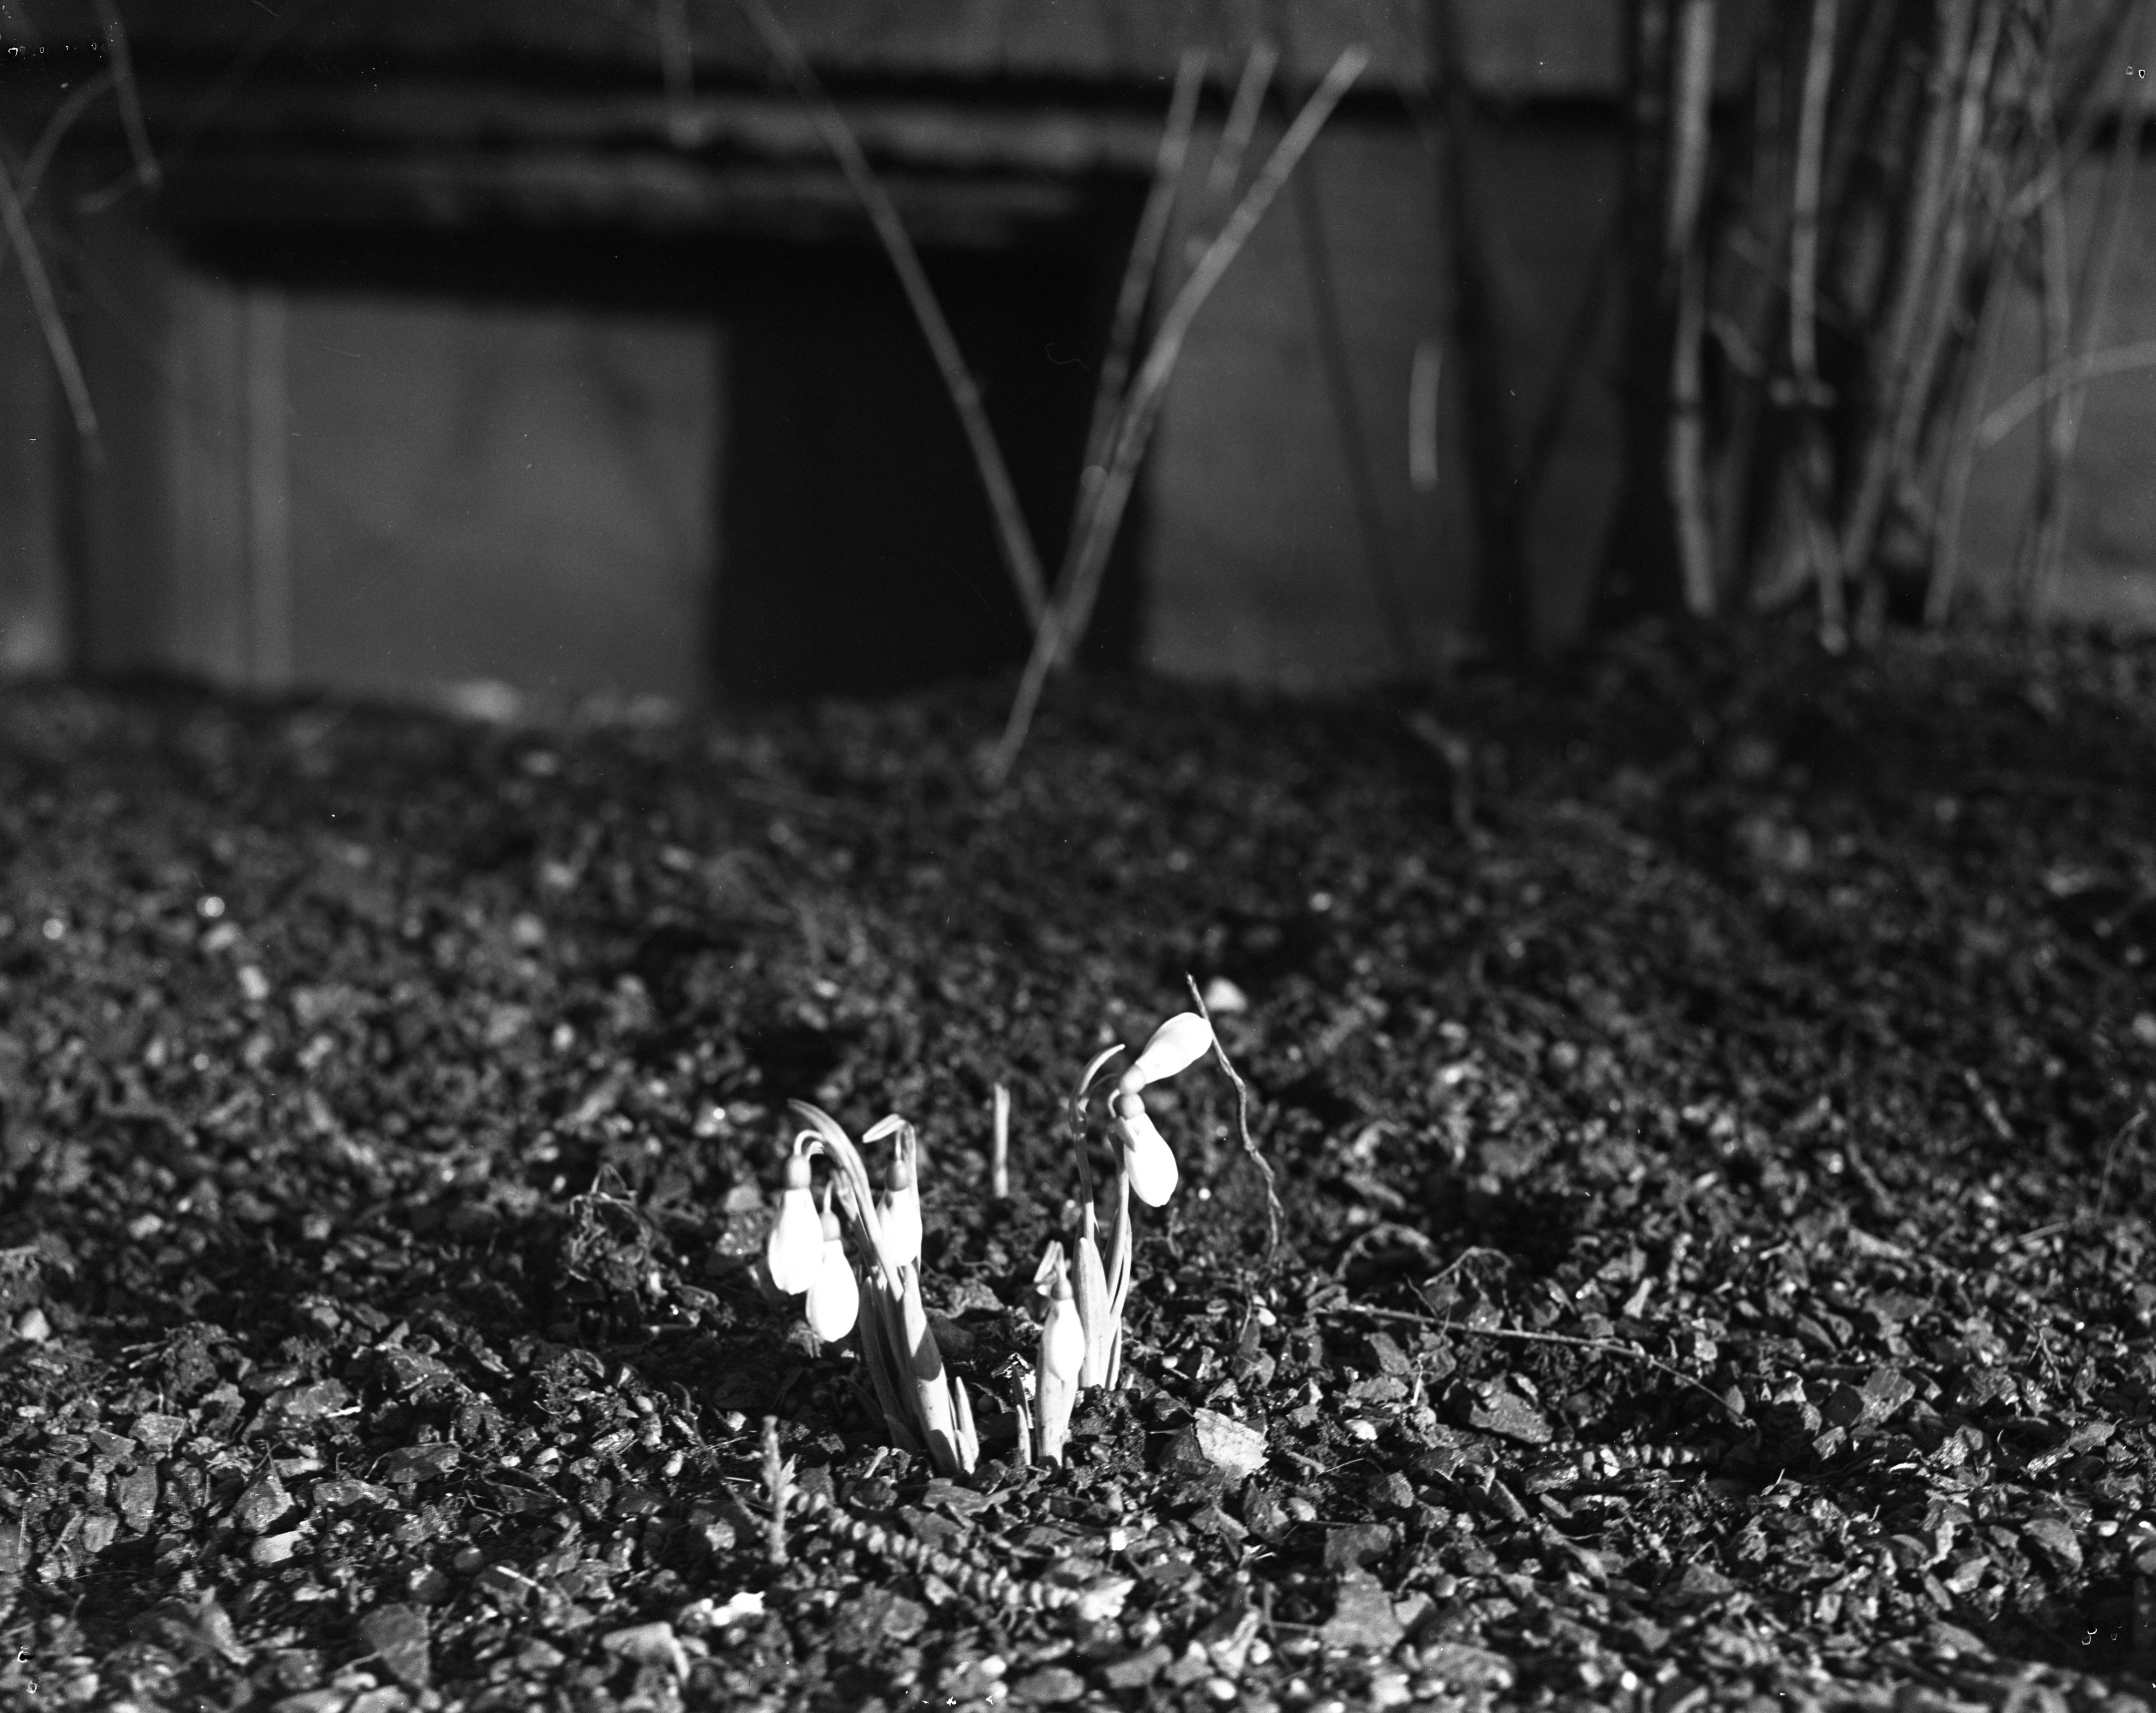 Snowdrops, Junius E. Beal Residence, 5th and William, February 1953 image